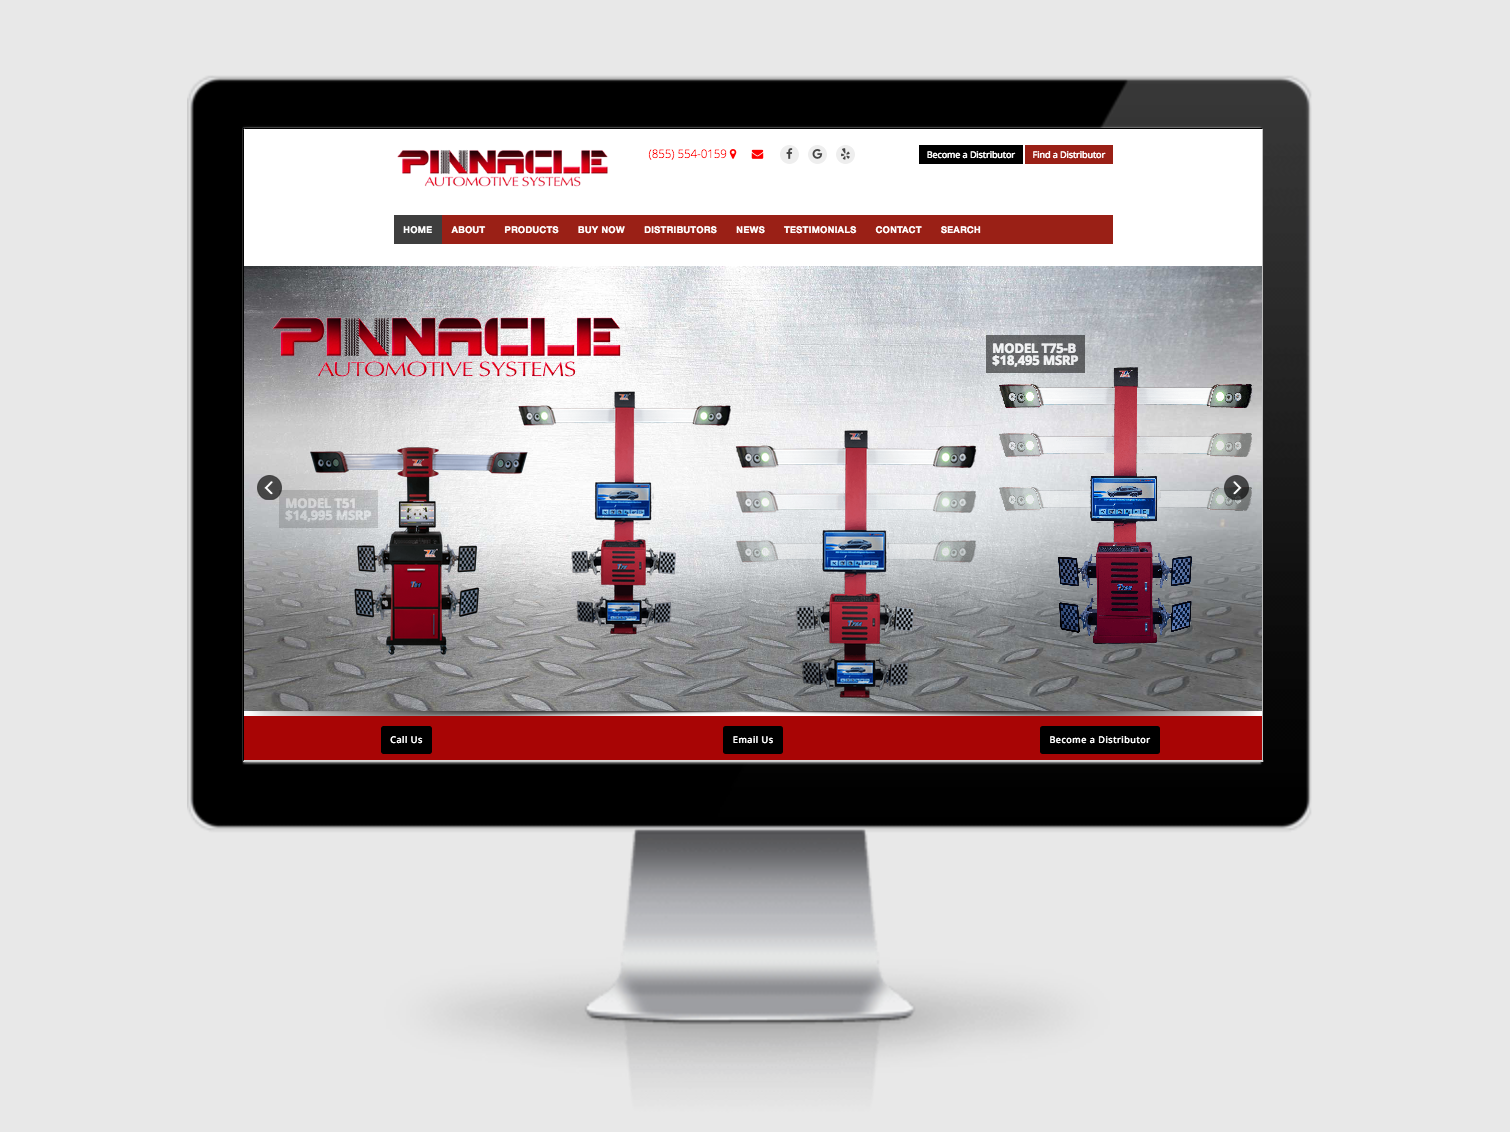 Pinnacle Automotive System